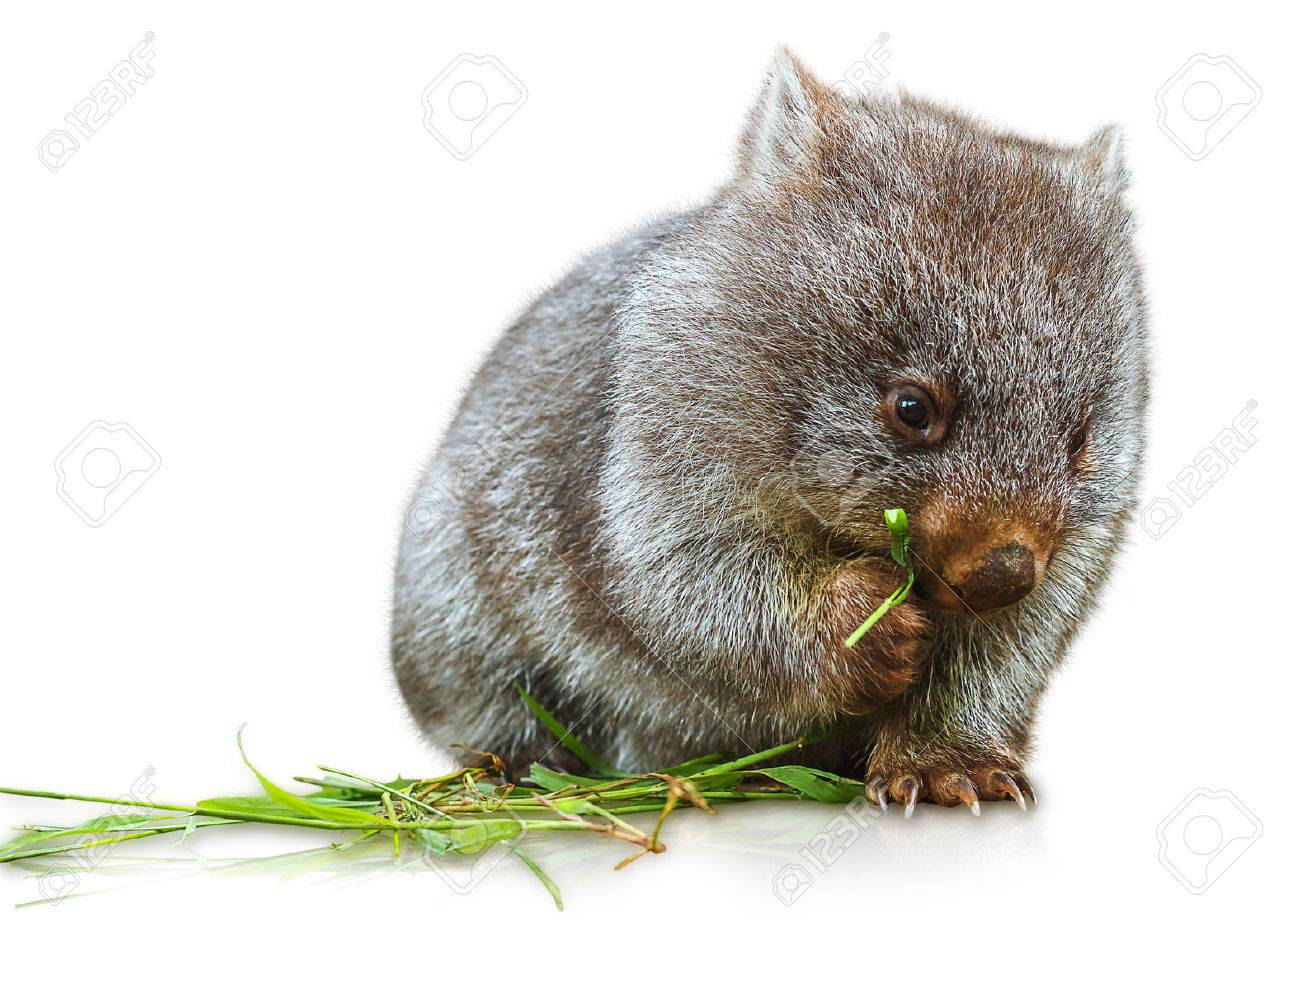 Little wombat female 3 months. Isolated on white background. Family of Wombat, mammal, marsupial herbivore that lives in Australia and Tasmania. Stock Photo - 41238916